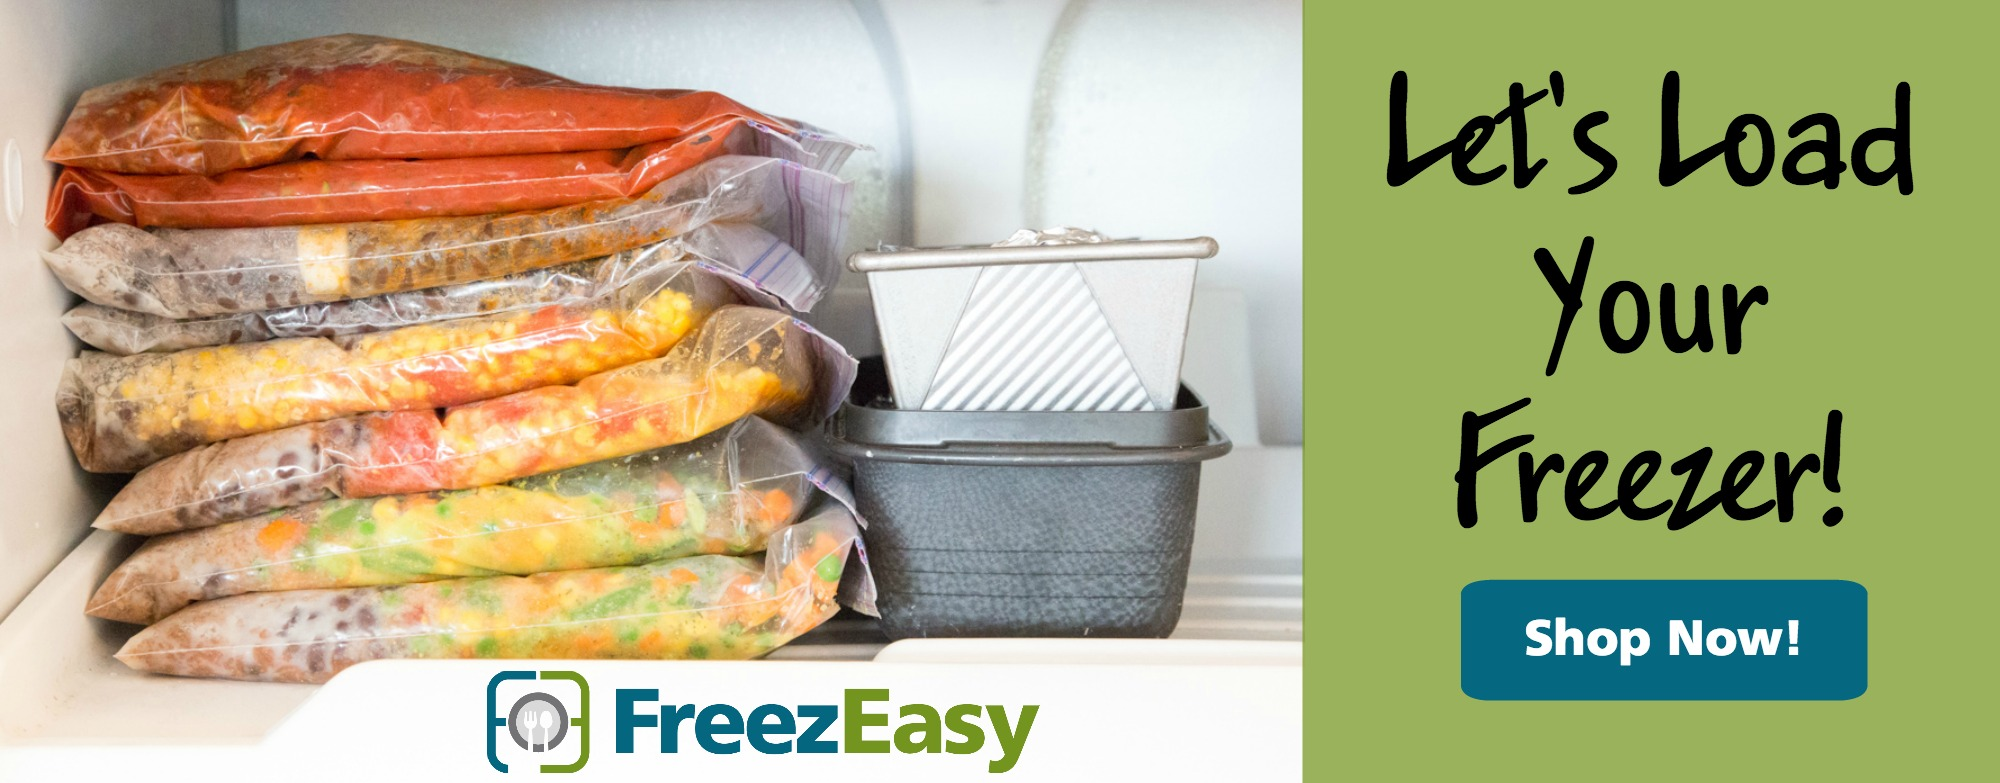 Load Your Freezer A